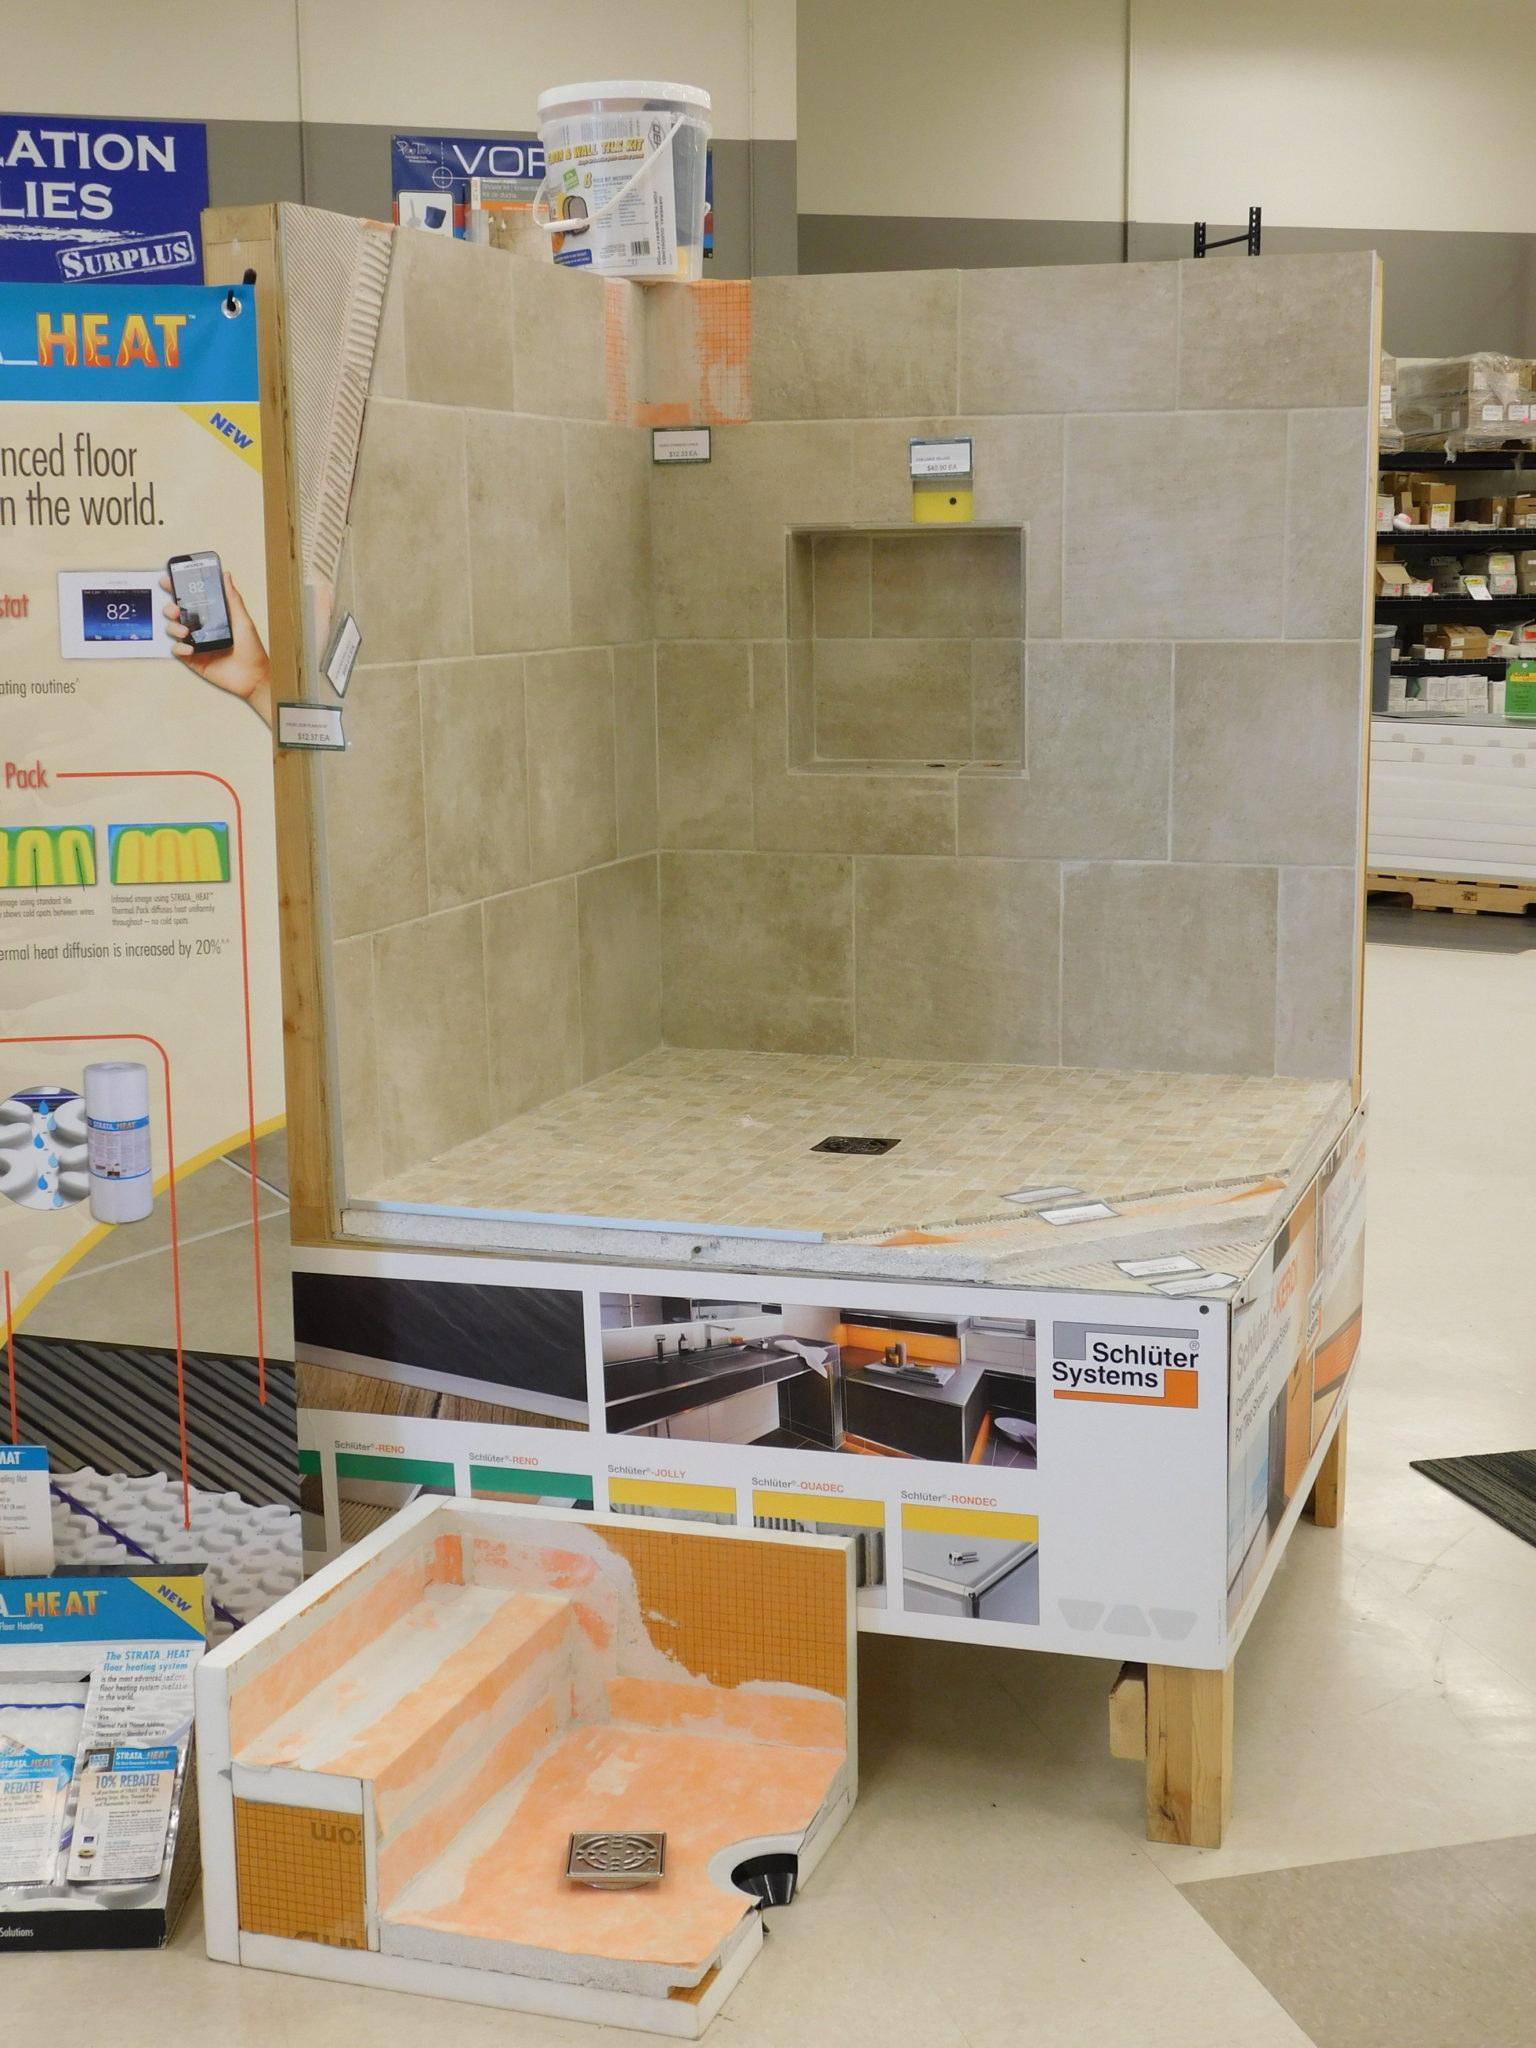 Shower Systems - Floor Surplus & Outlet